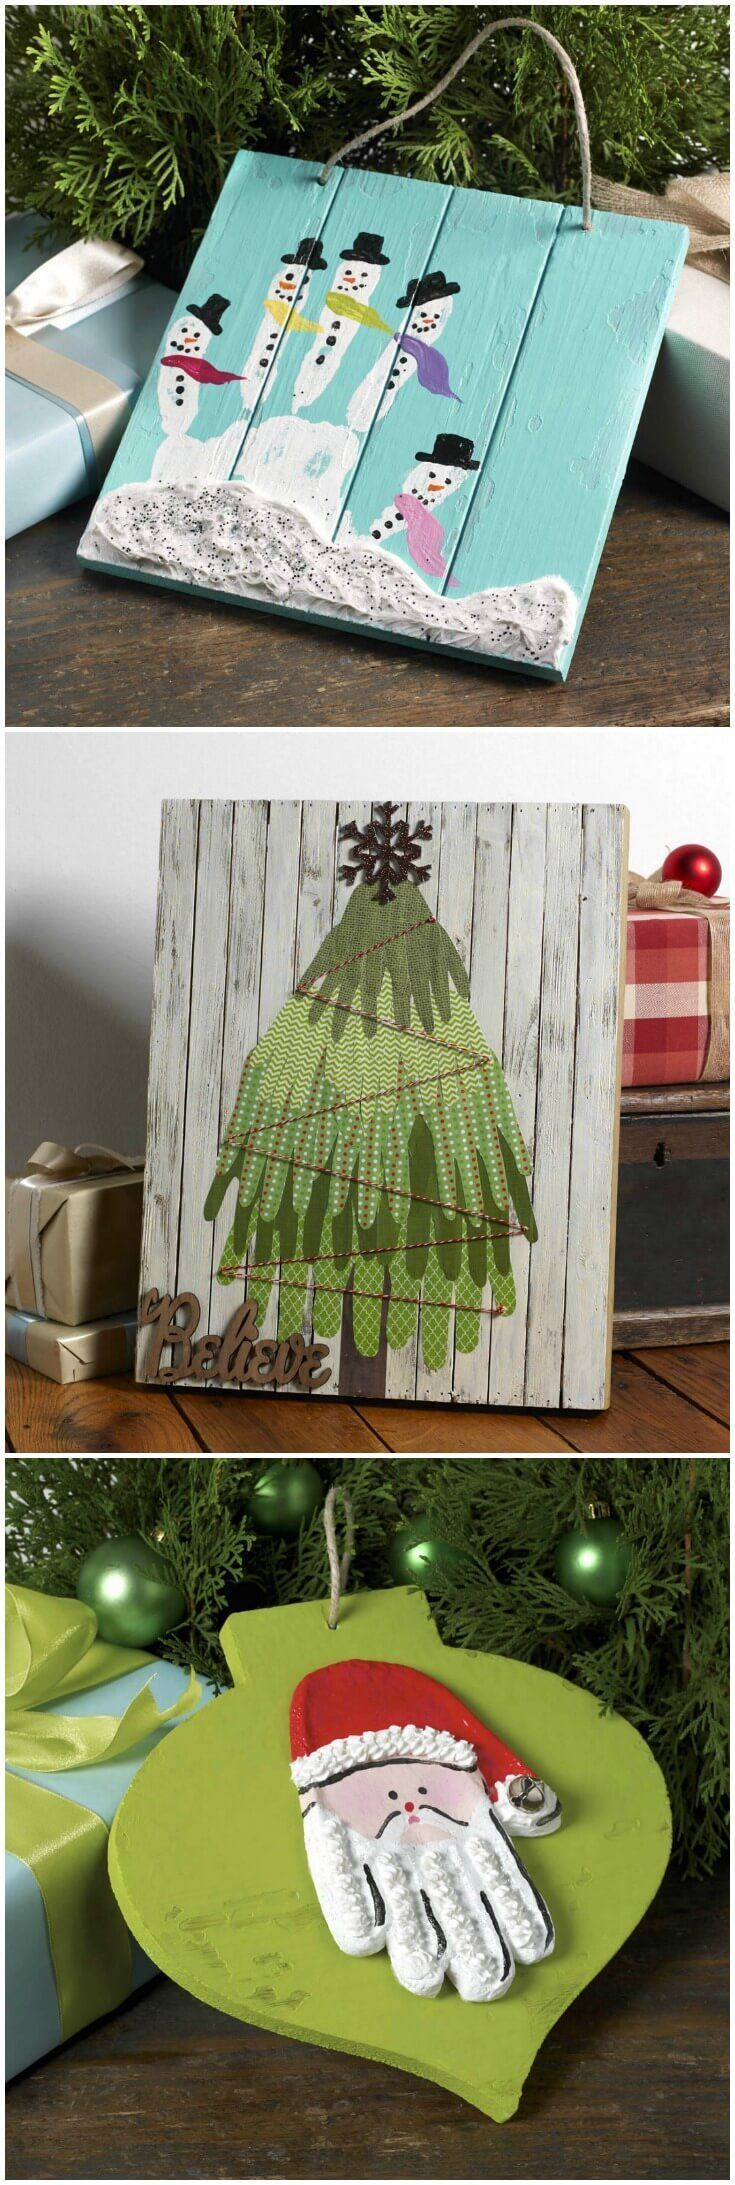 Easy Holiday Handprint Crafts